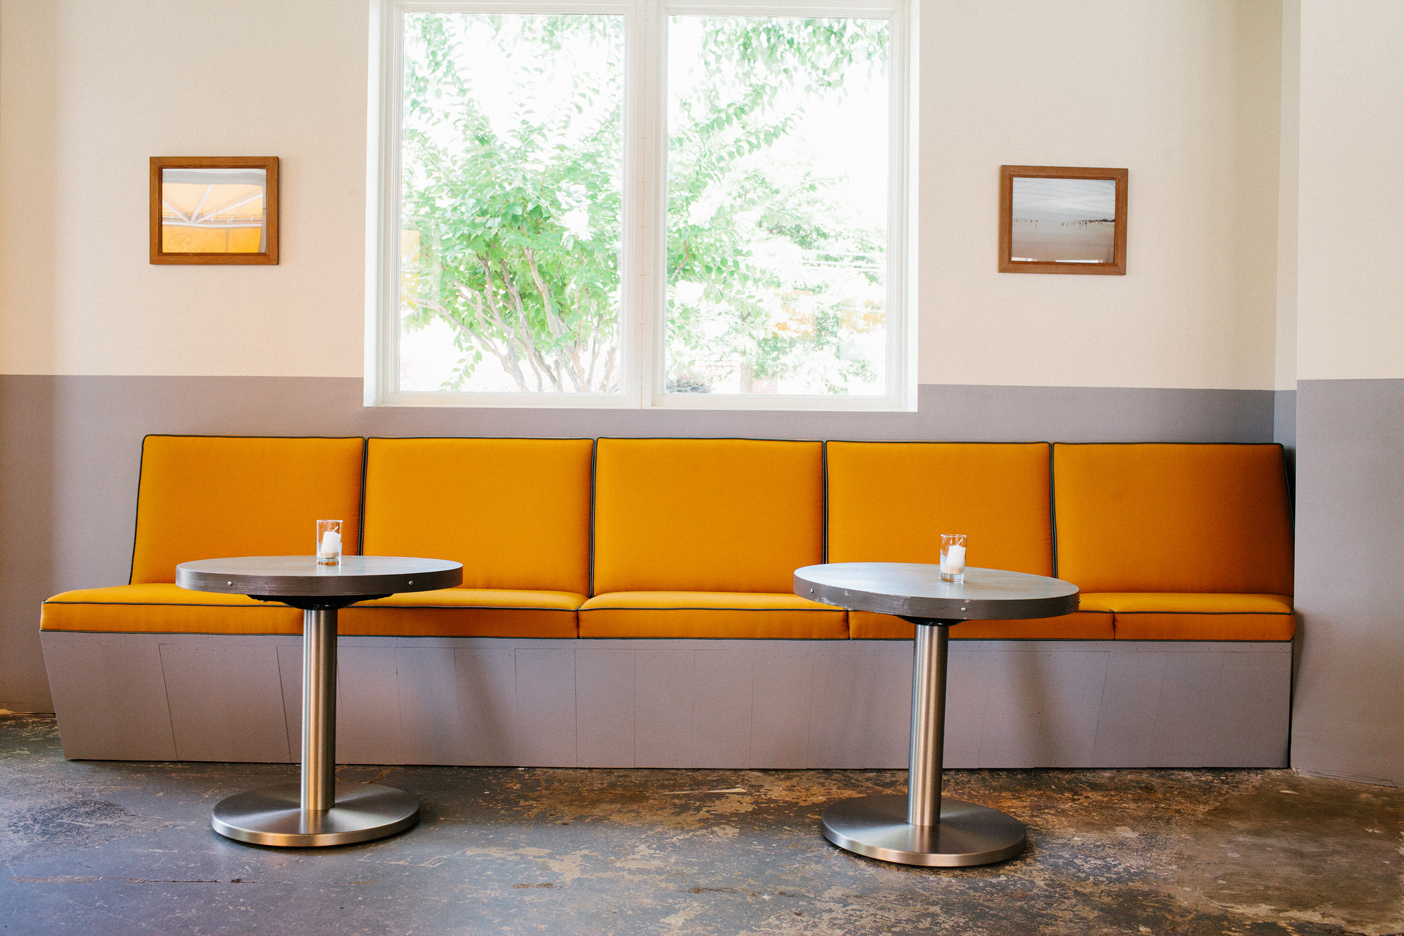 The Oyster bar at The Optimist | Smith Hanes. interior bench seating